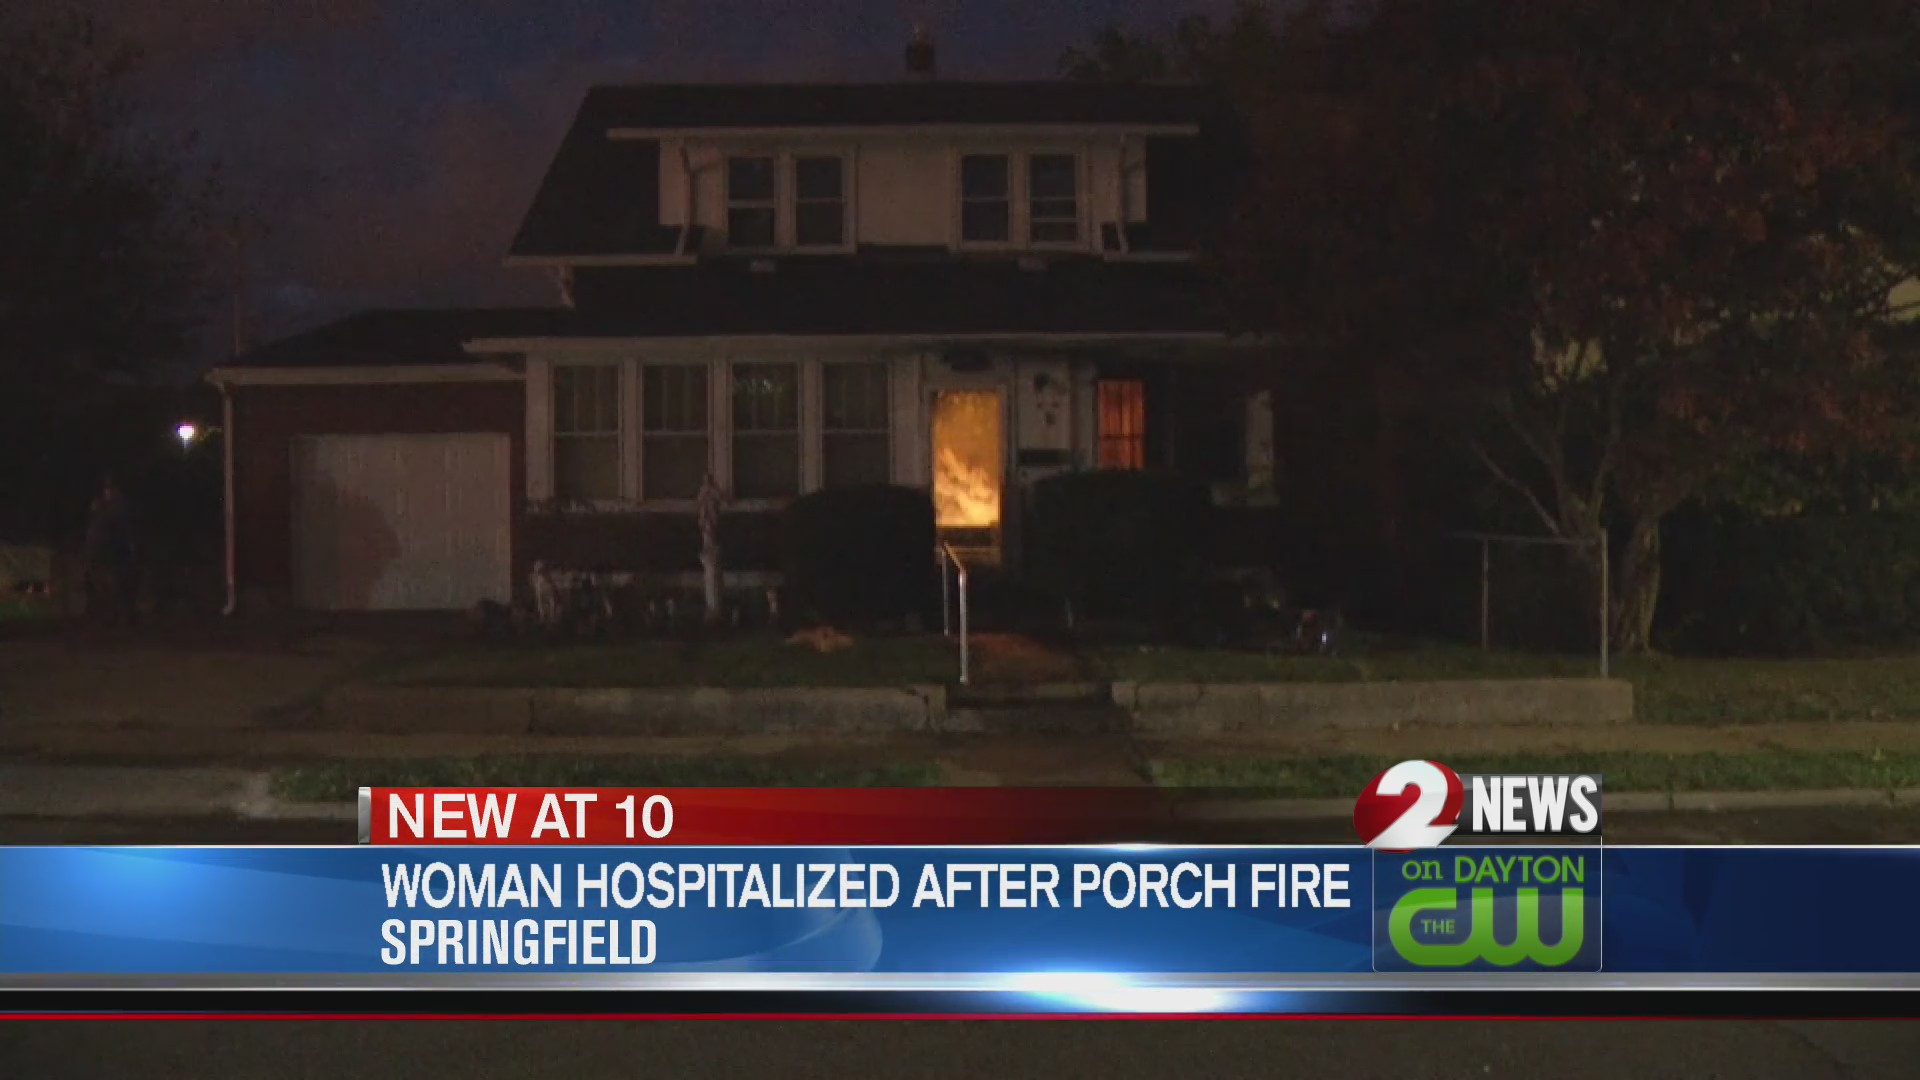 Woman hospitalized after porch fire